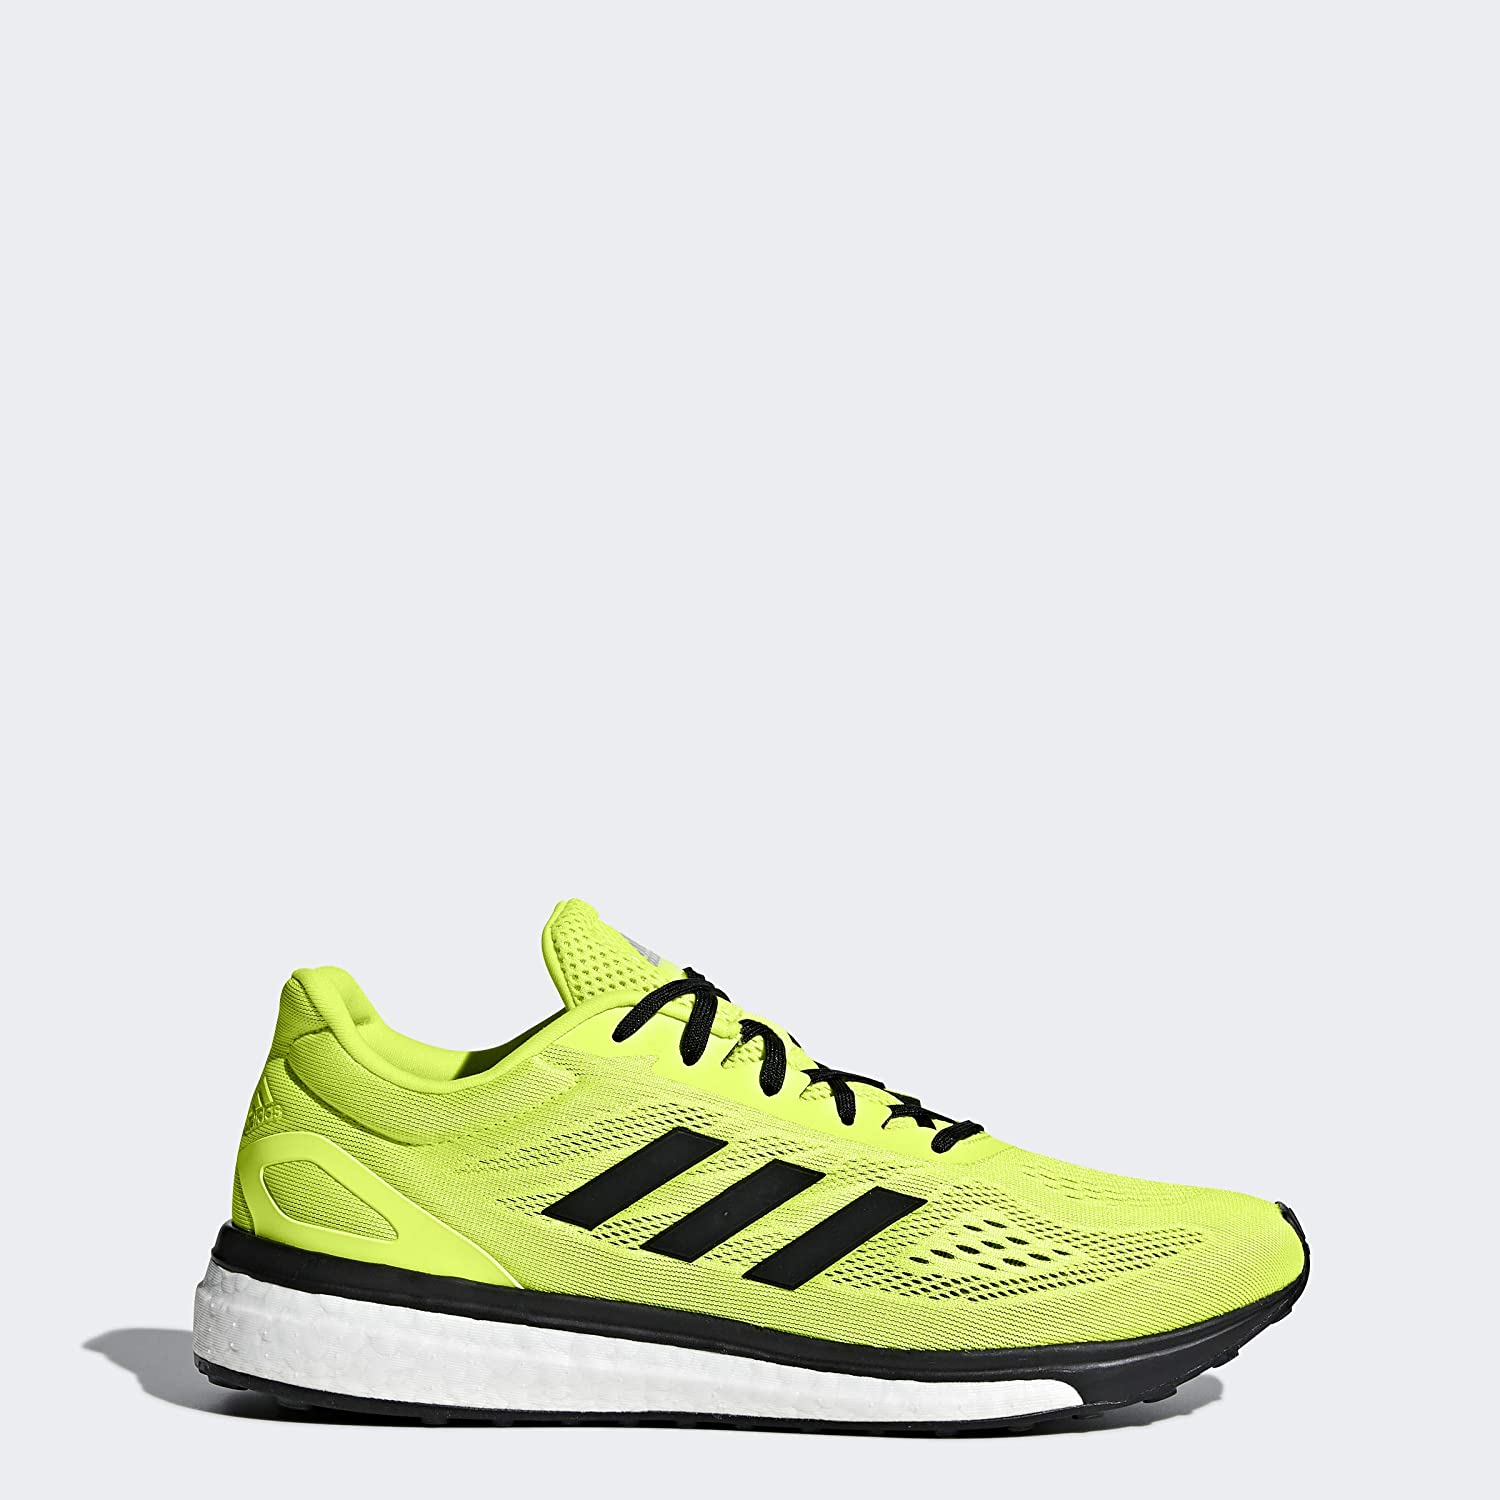 adidas Response Limited Shoes Men s